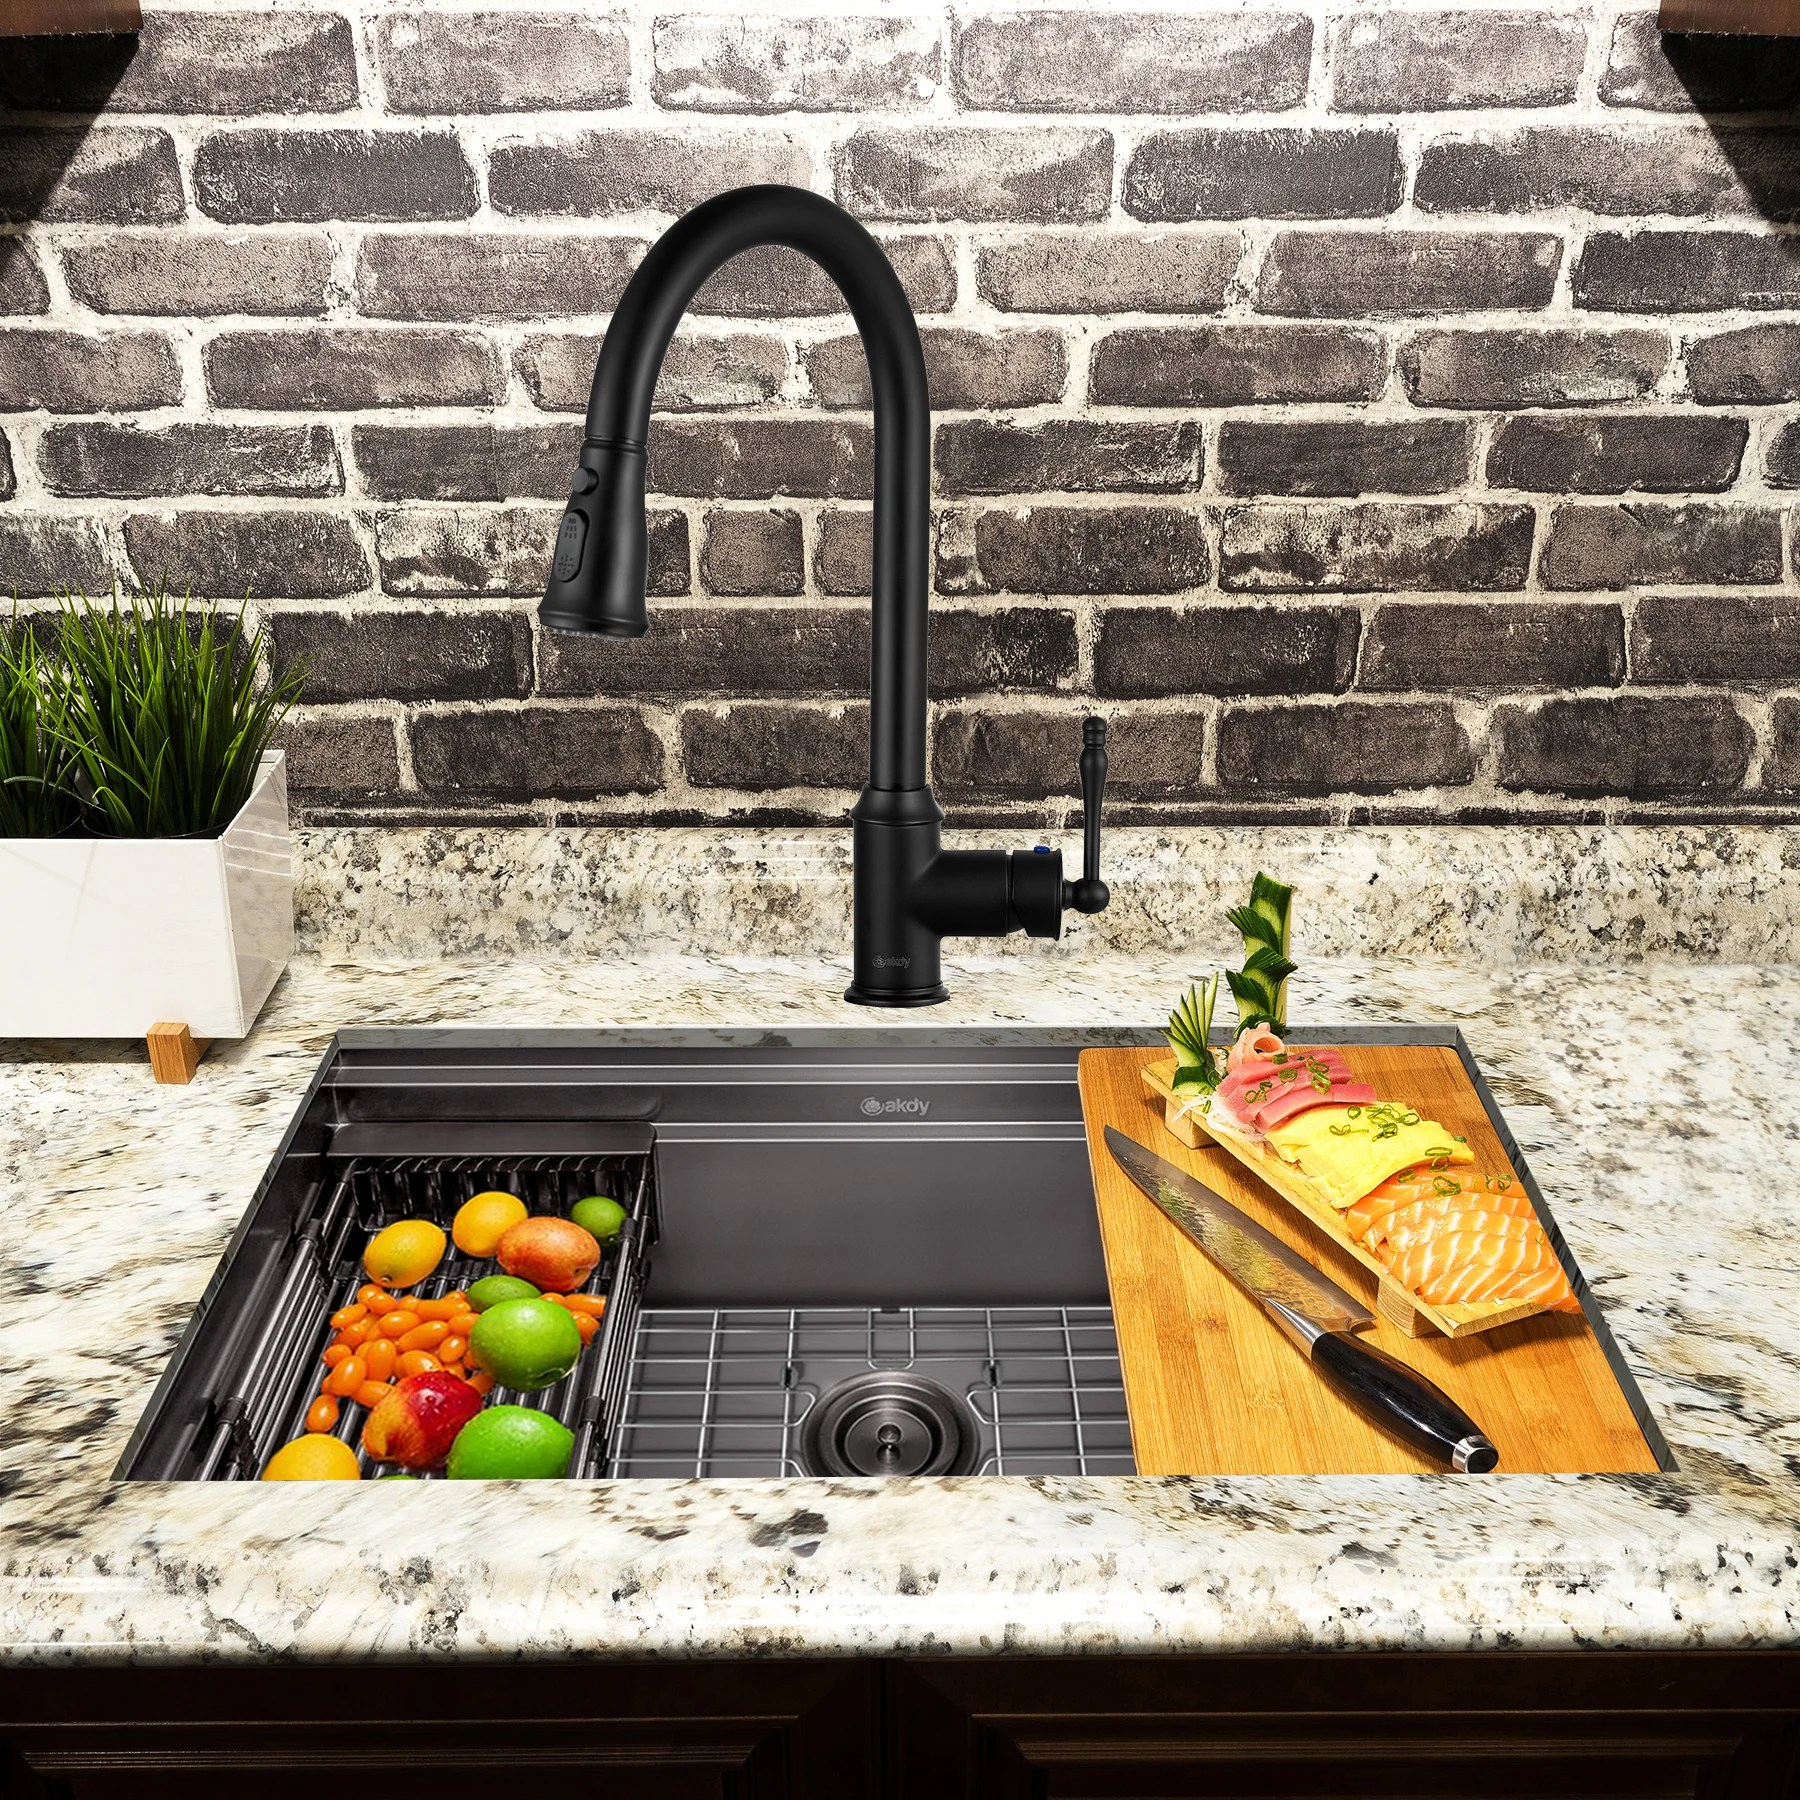 33 l x 22 w undermount kitchen sink with faucet